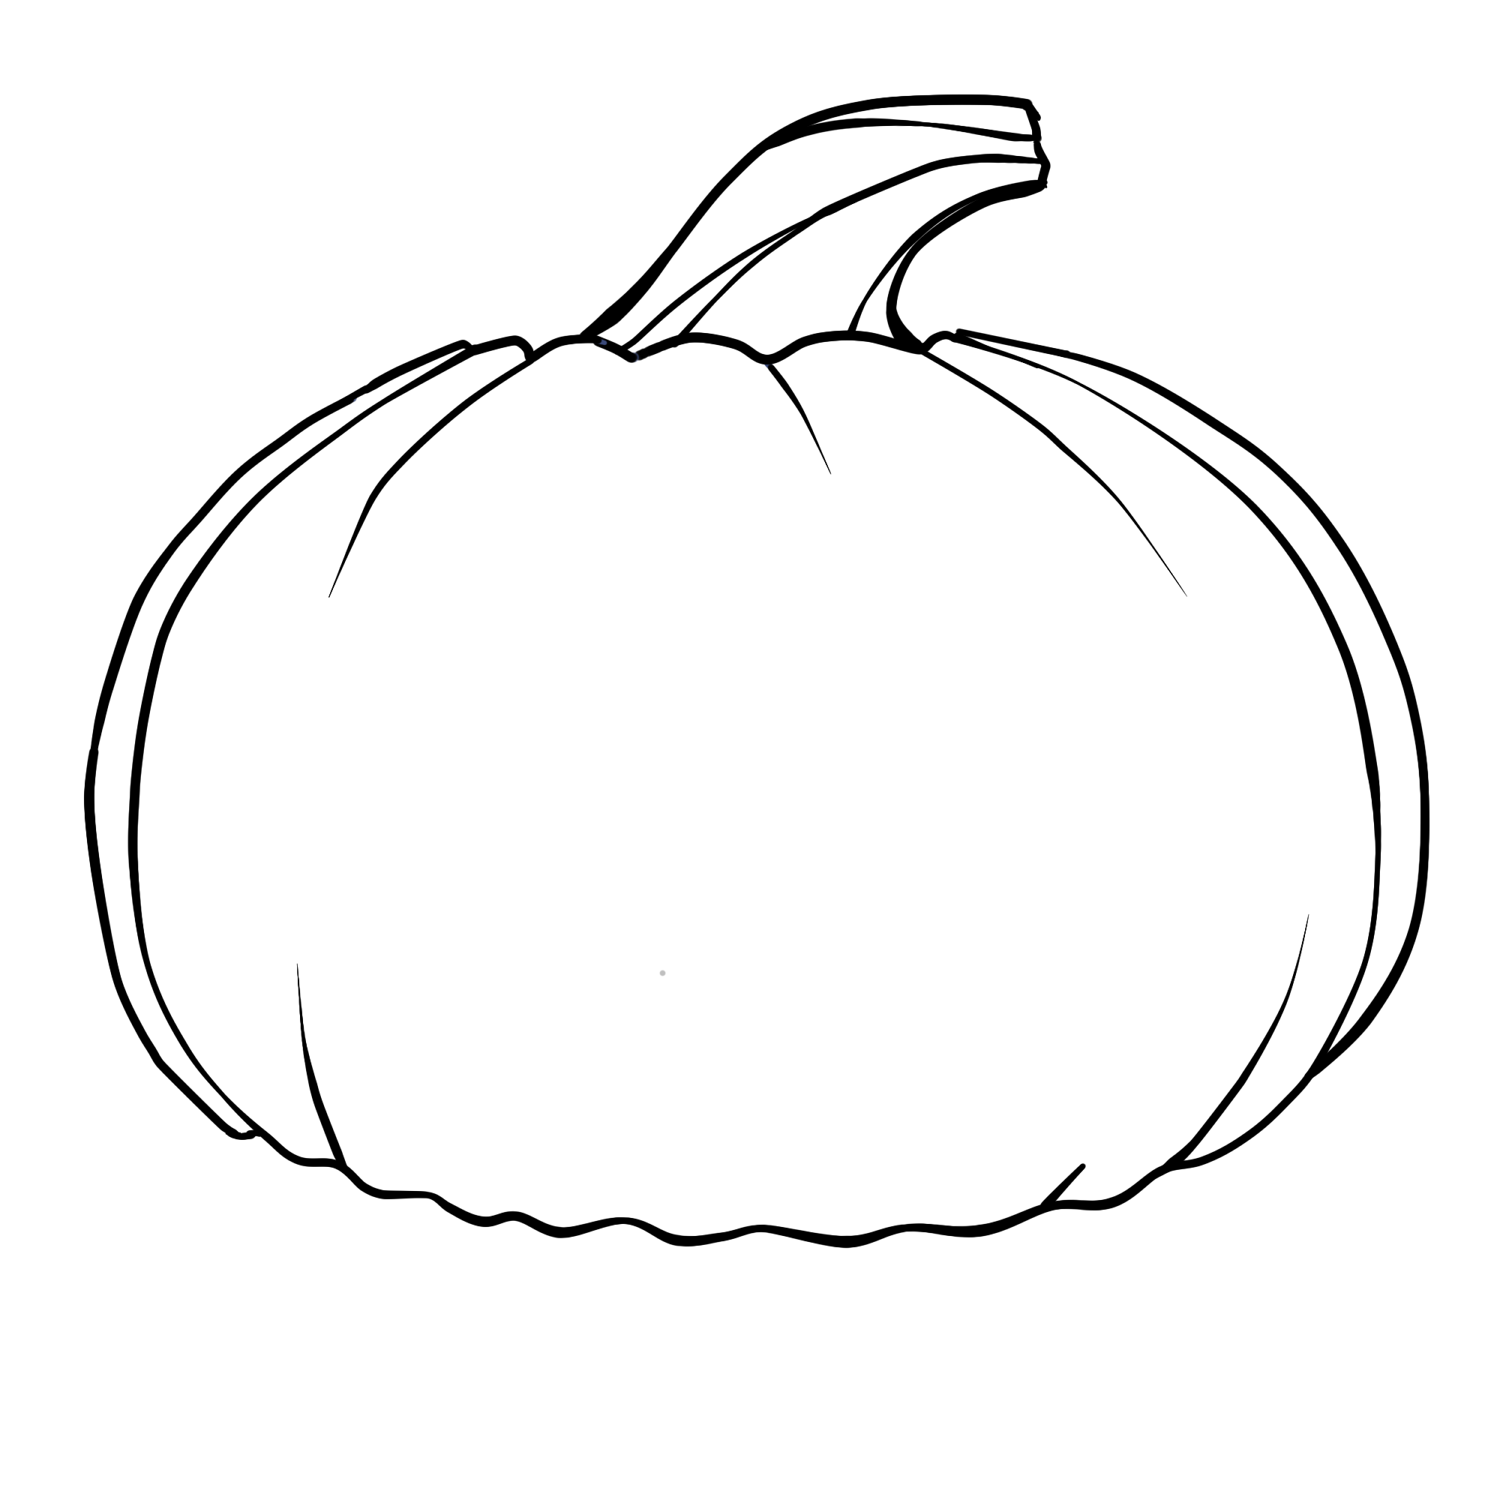 pumpkin%20outline%20printable